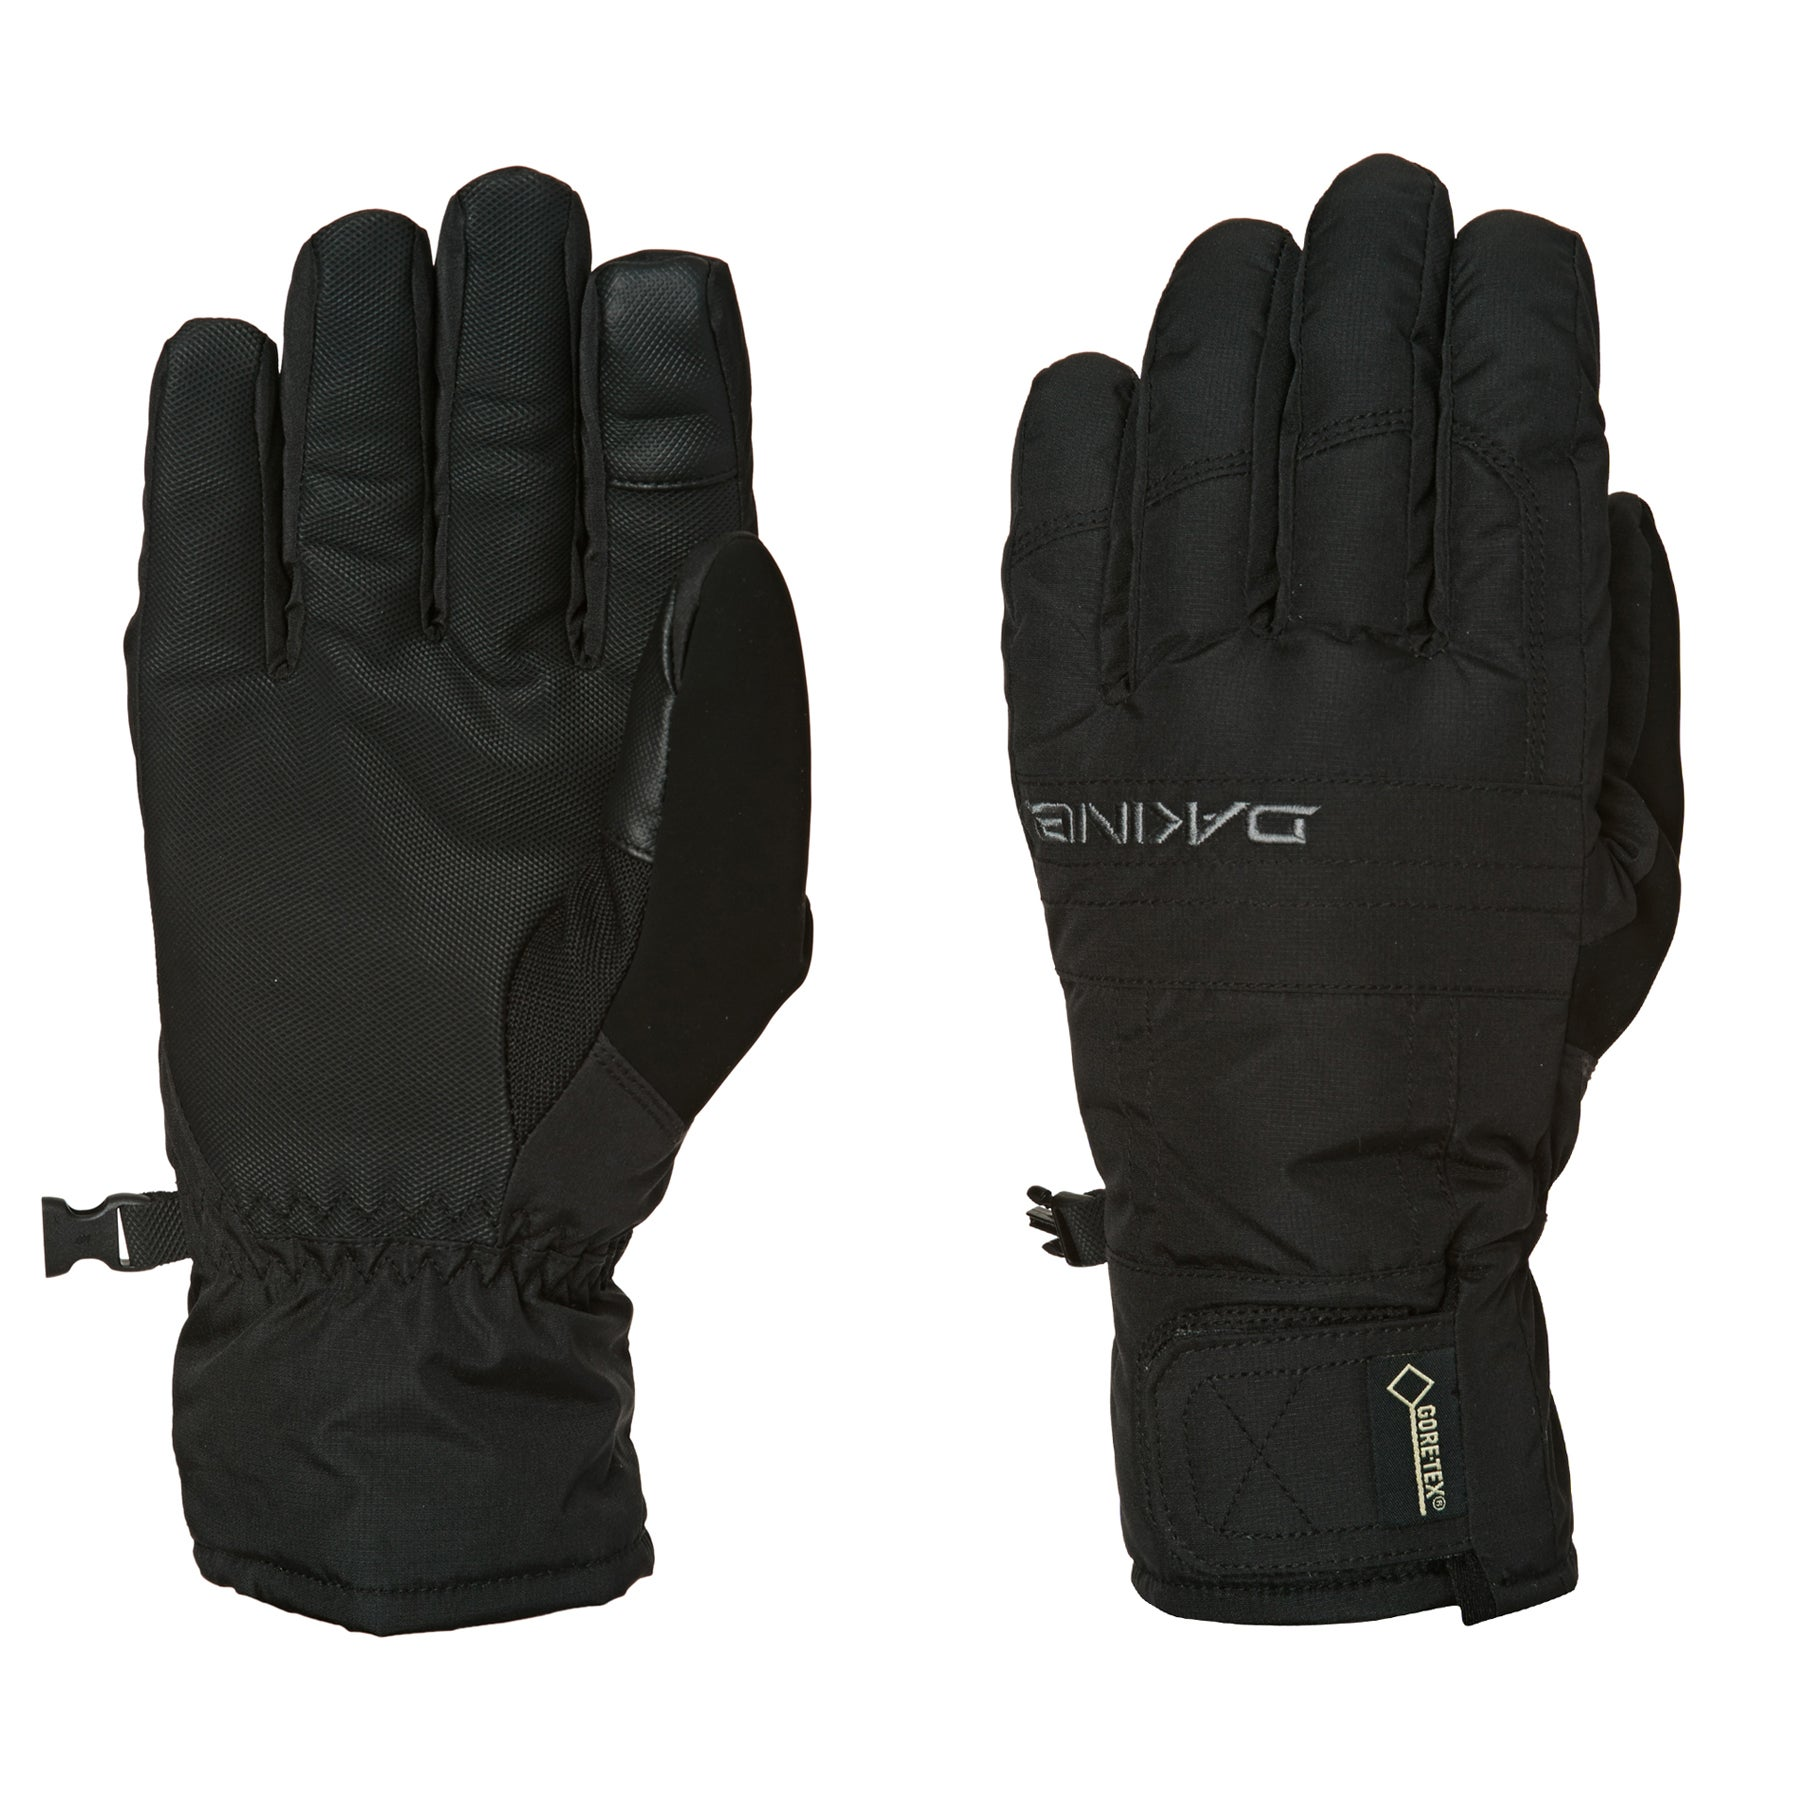 Gants de ski Dakine Bronco - Black